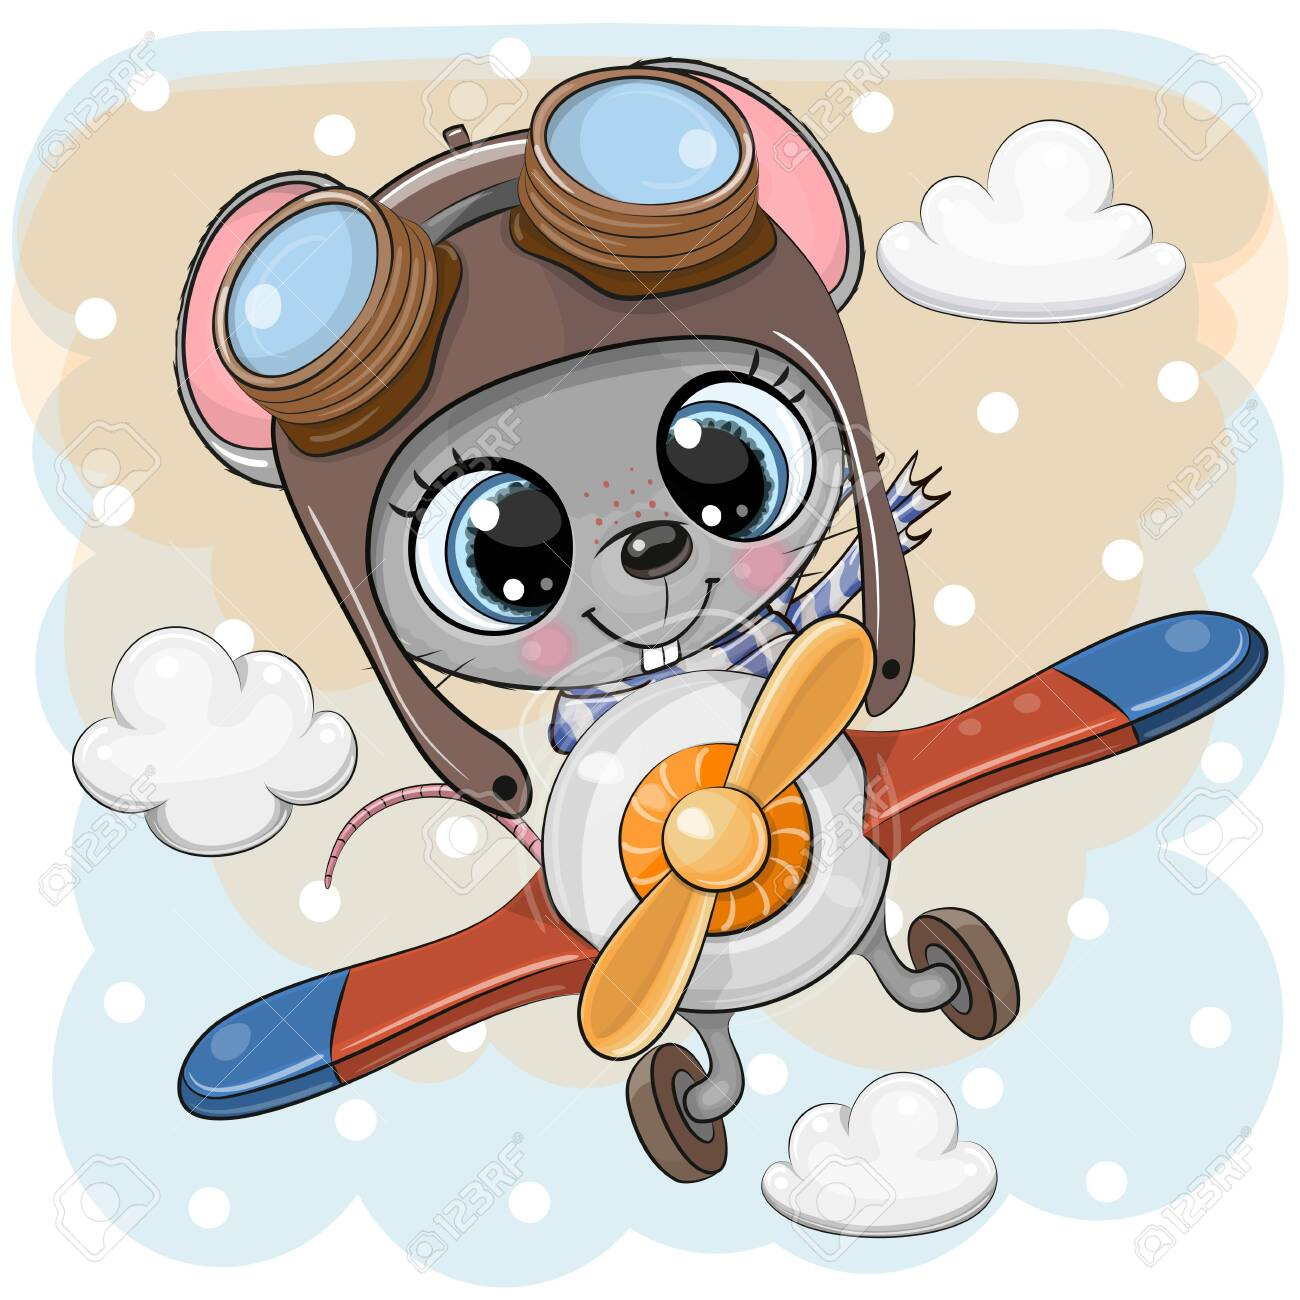 Cute Cartoon Mouse Is Flying On A Plane Royalty Free Cliparts Vectors And Stock Illustration Image 131315766